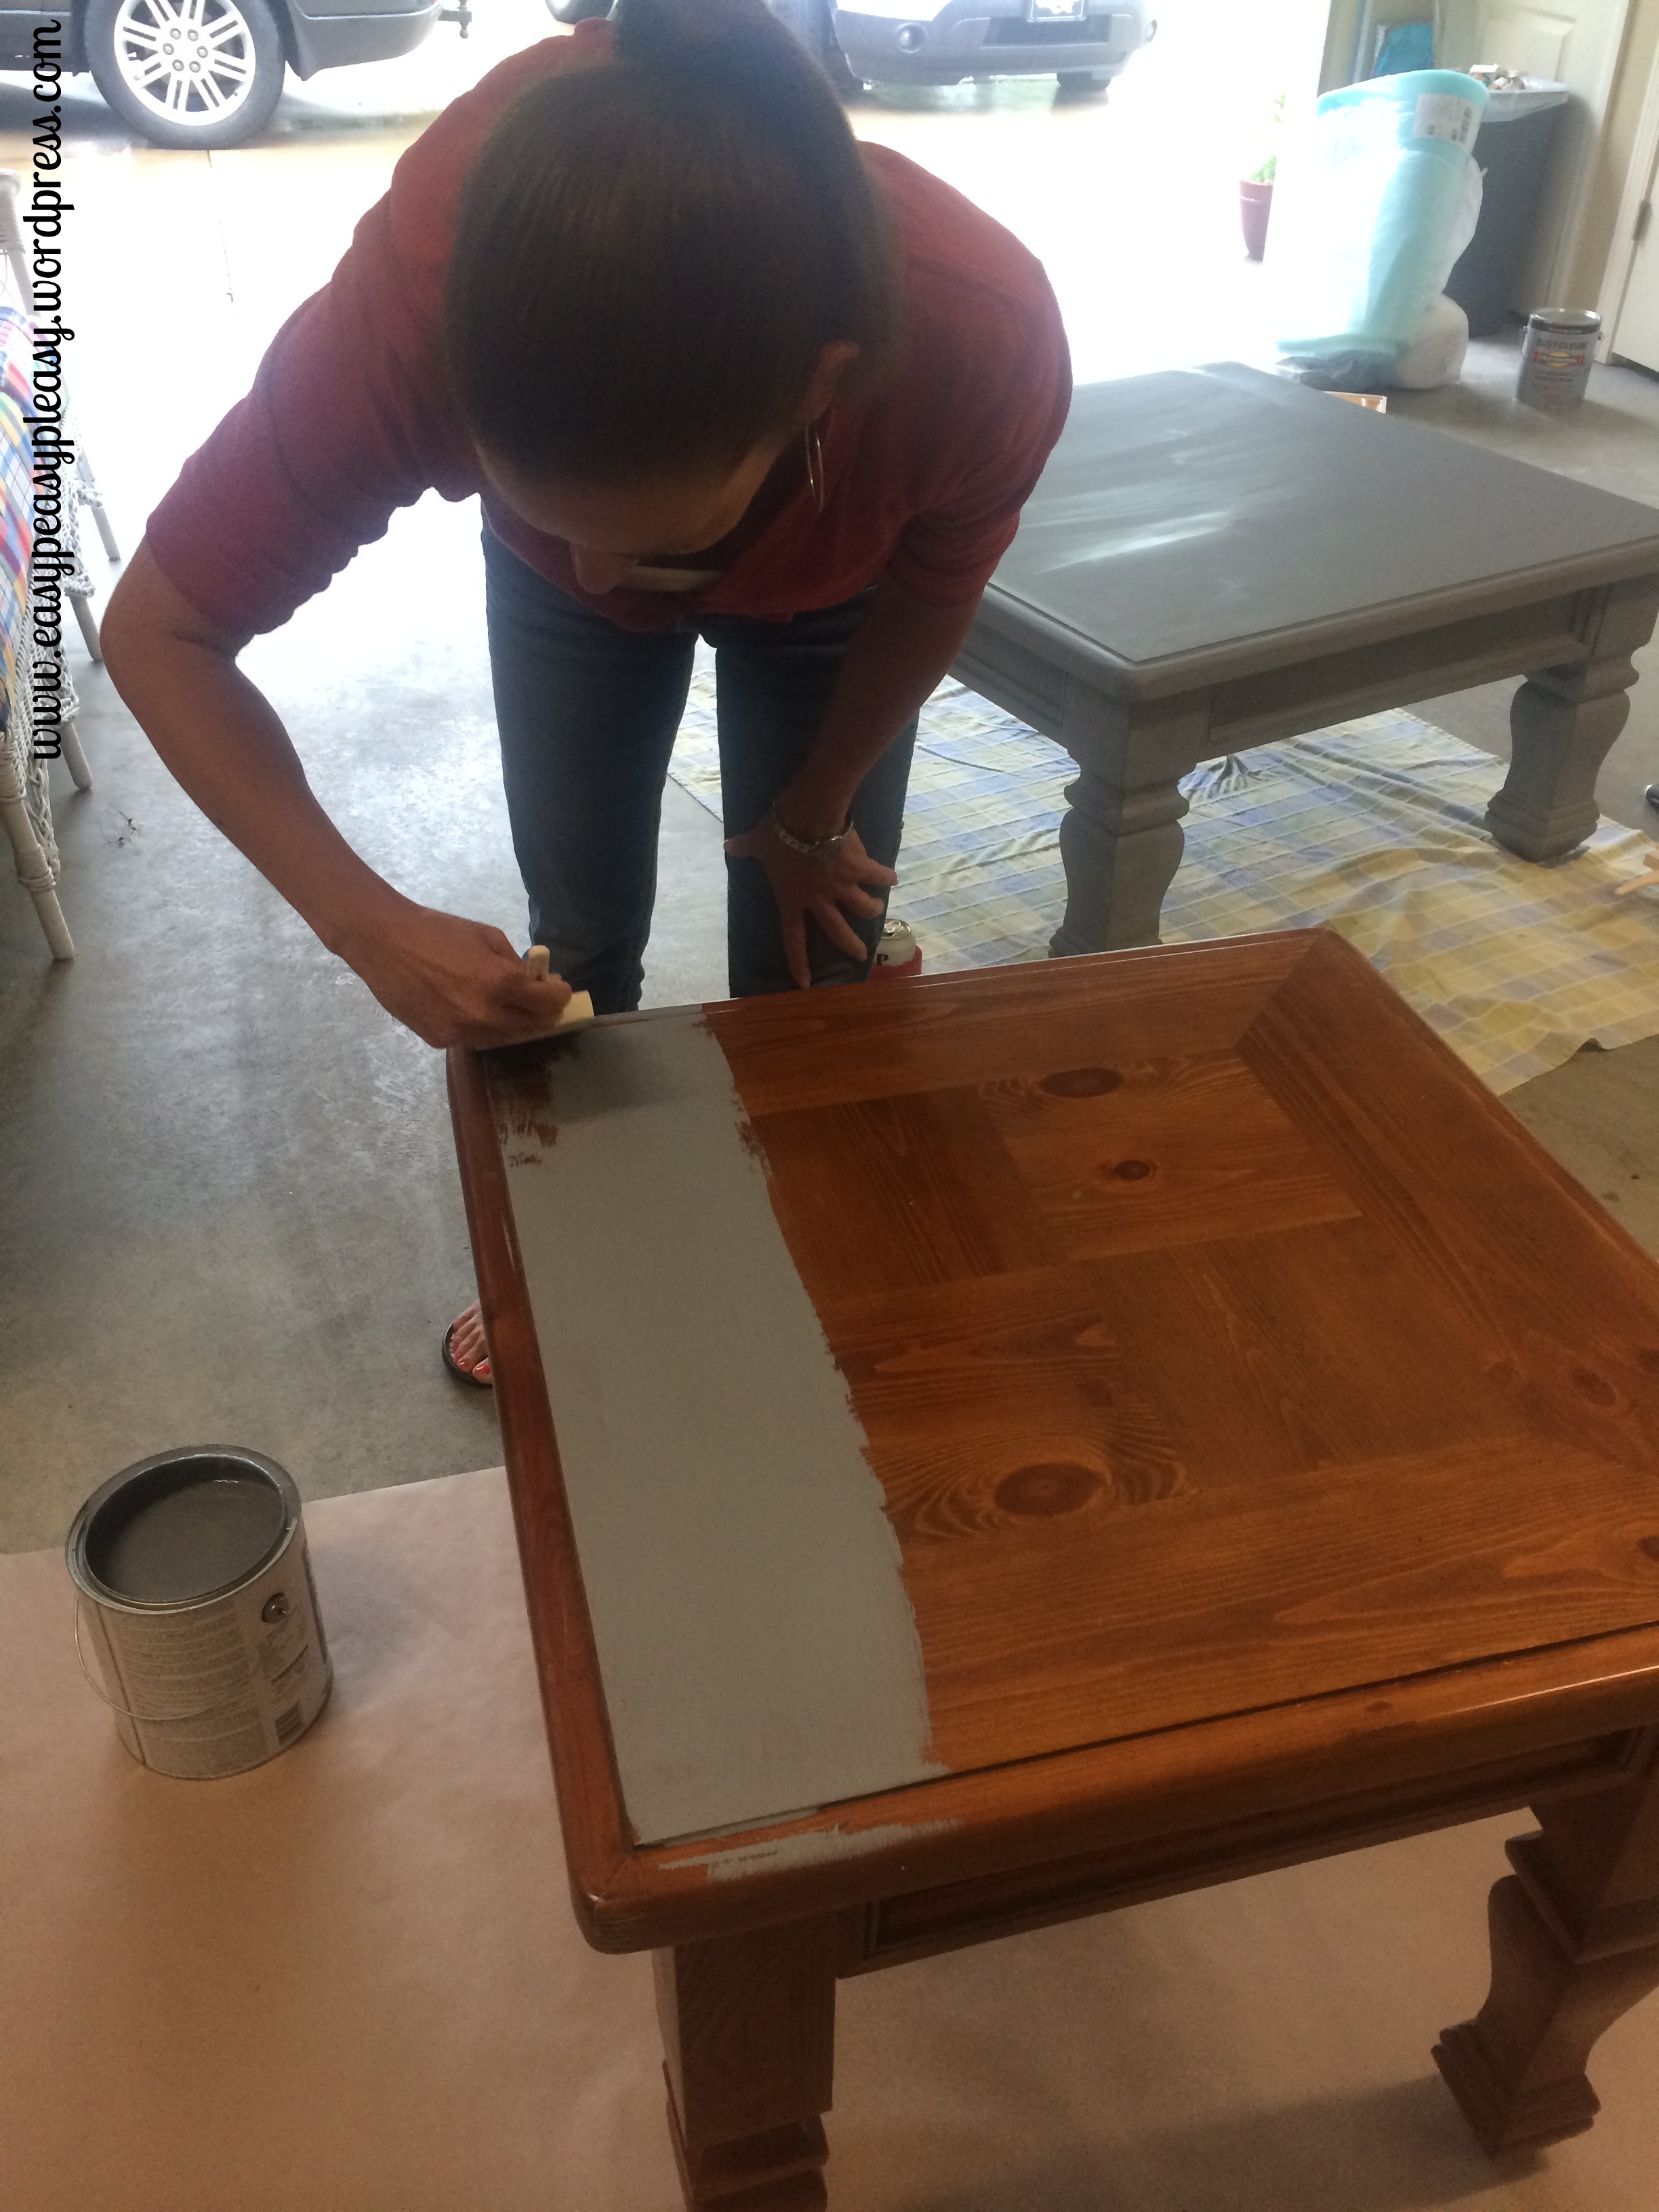 Diy table to ottoman and how to paint furniture without sanding painting cover stain primer as a base coat on furniture so no sanding would be needed geotapseo Choice Image